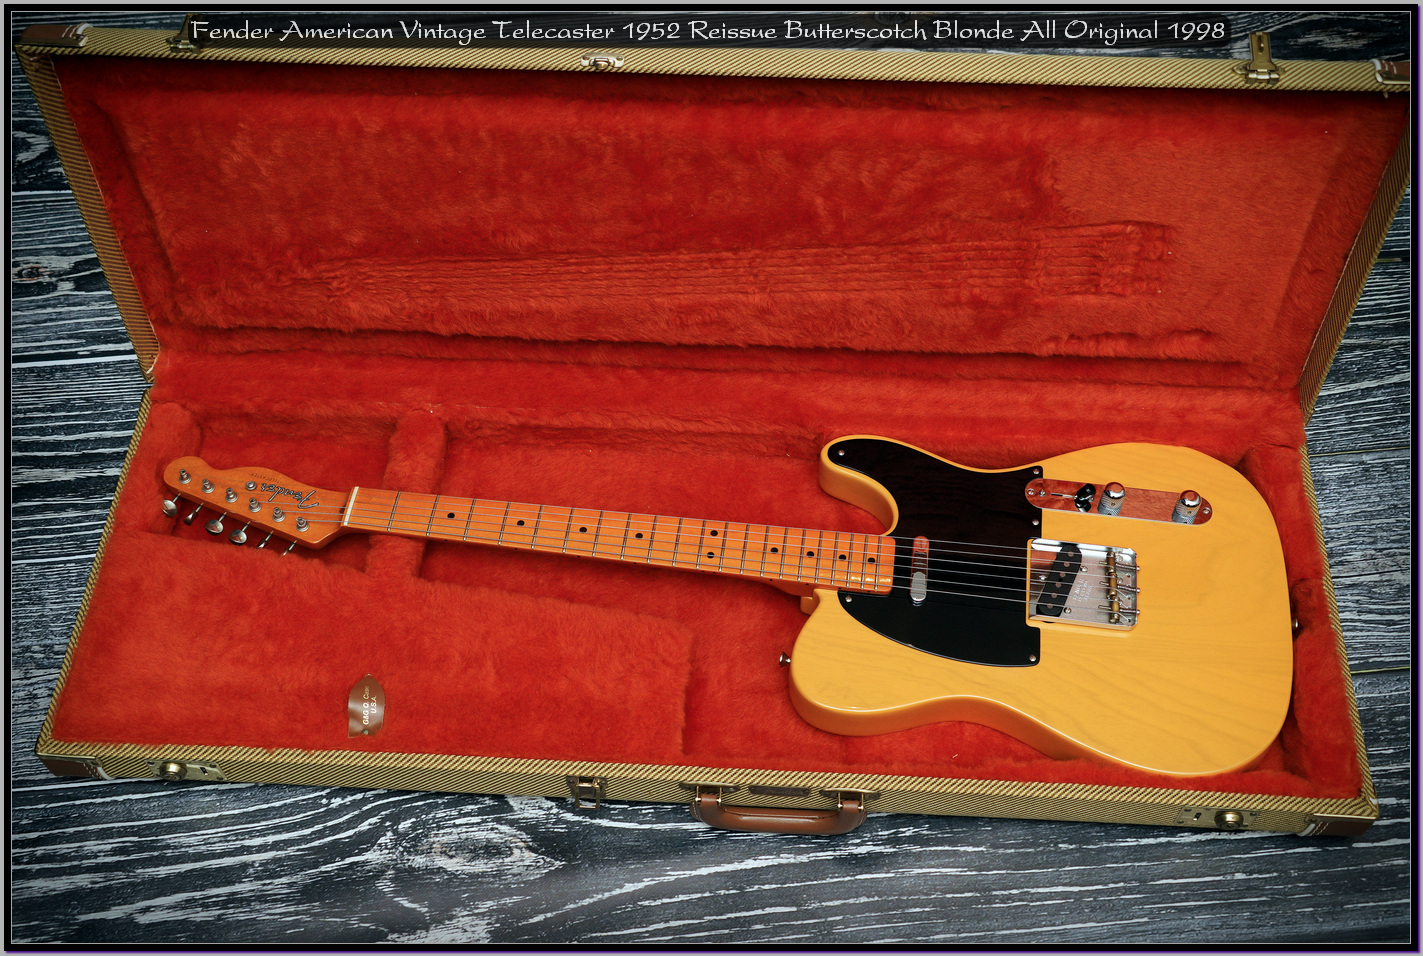 Fender American Vintage Telecaster 1952 Reissue Butterscotch Blonde All Original 1998 09_x1440.jpg